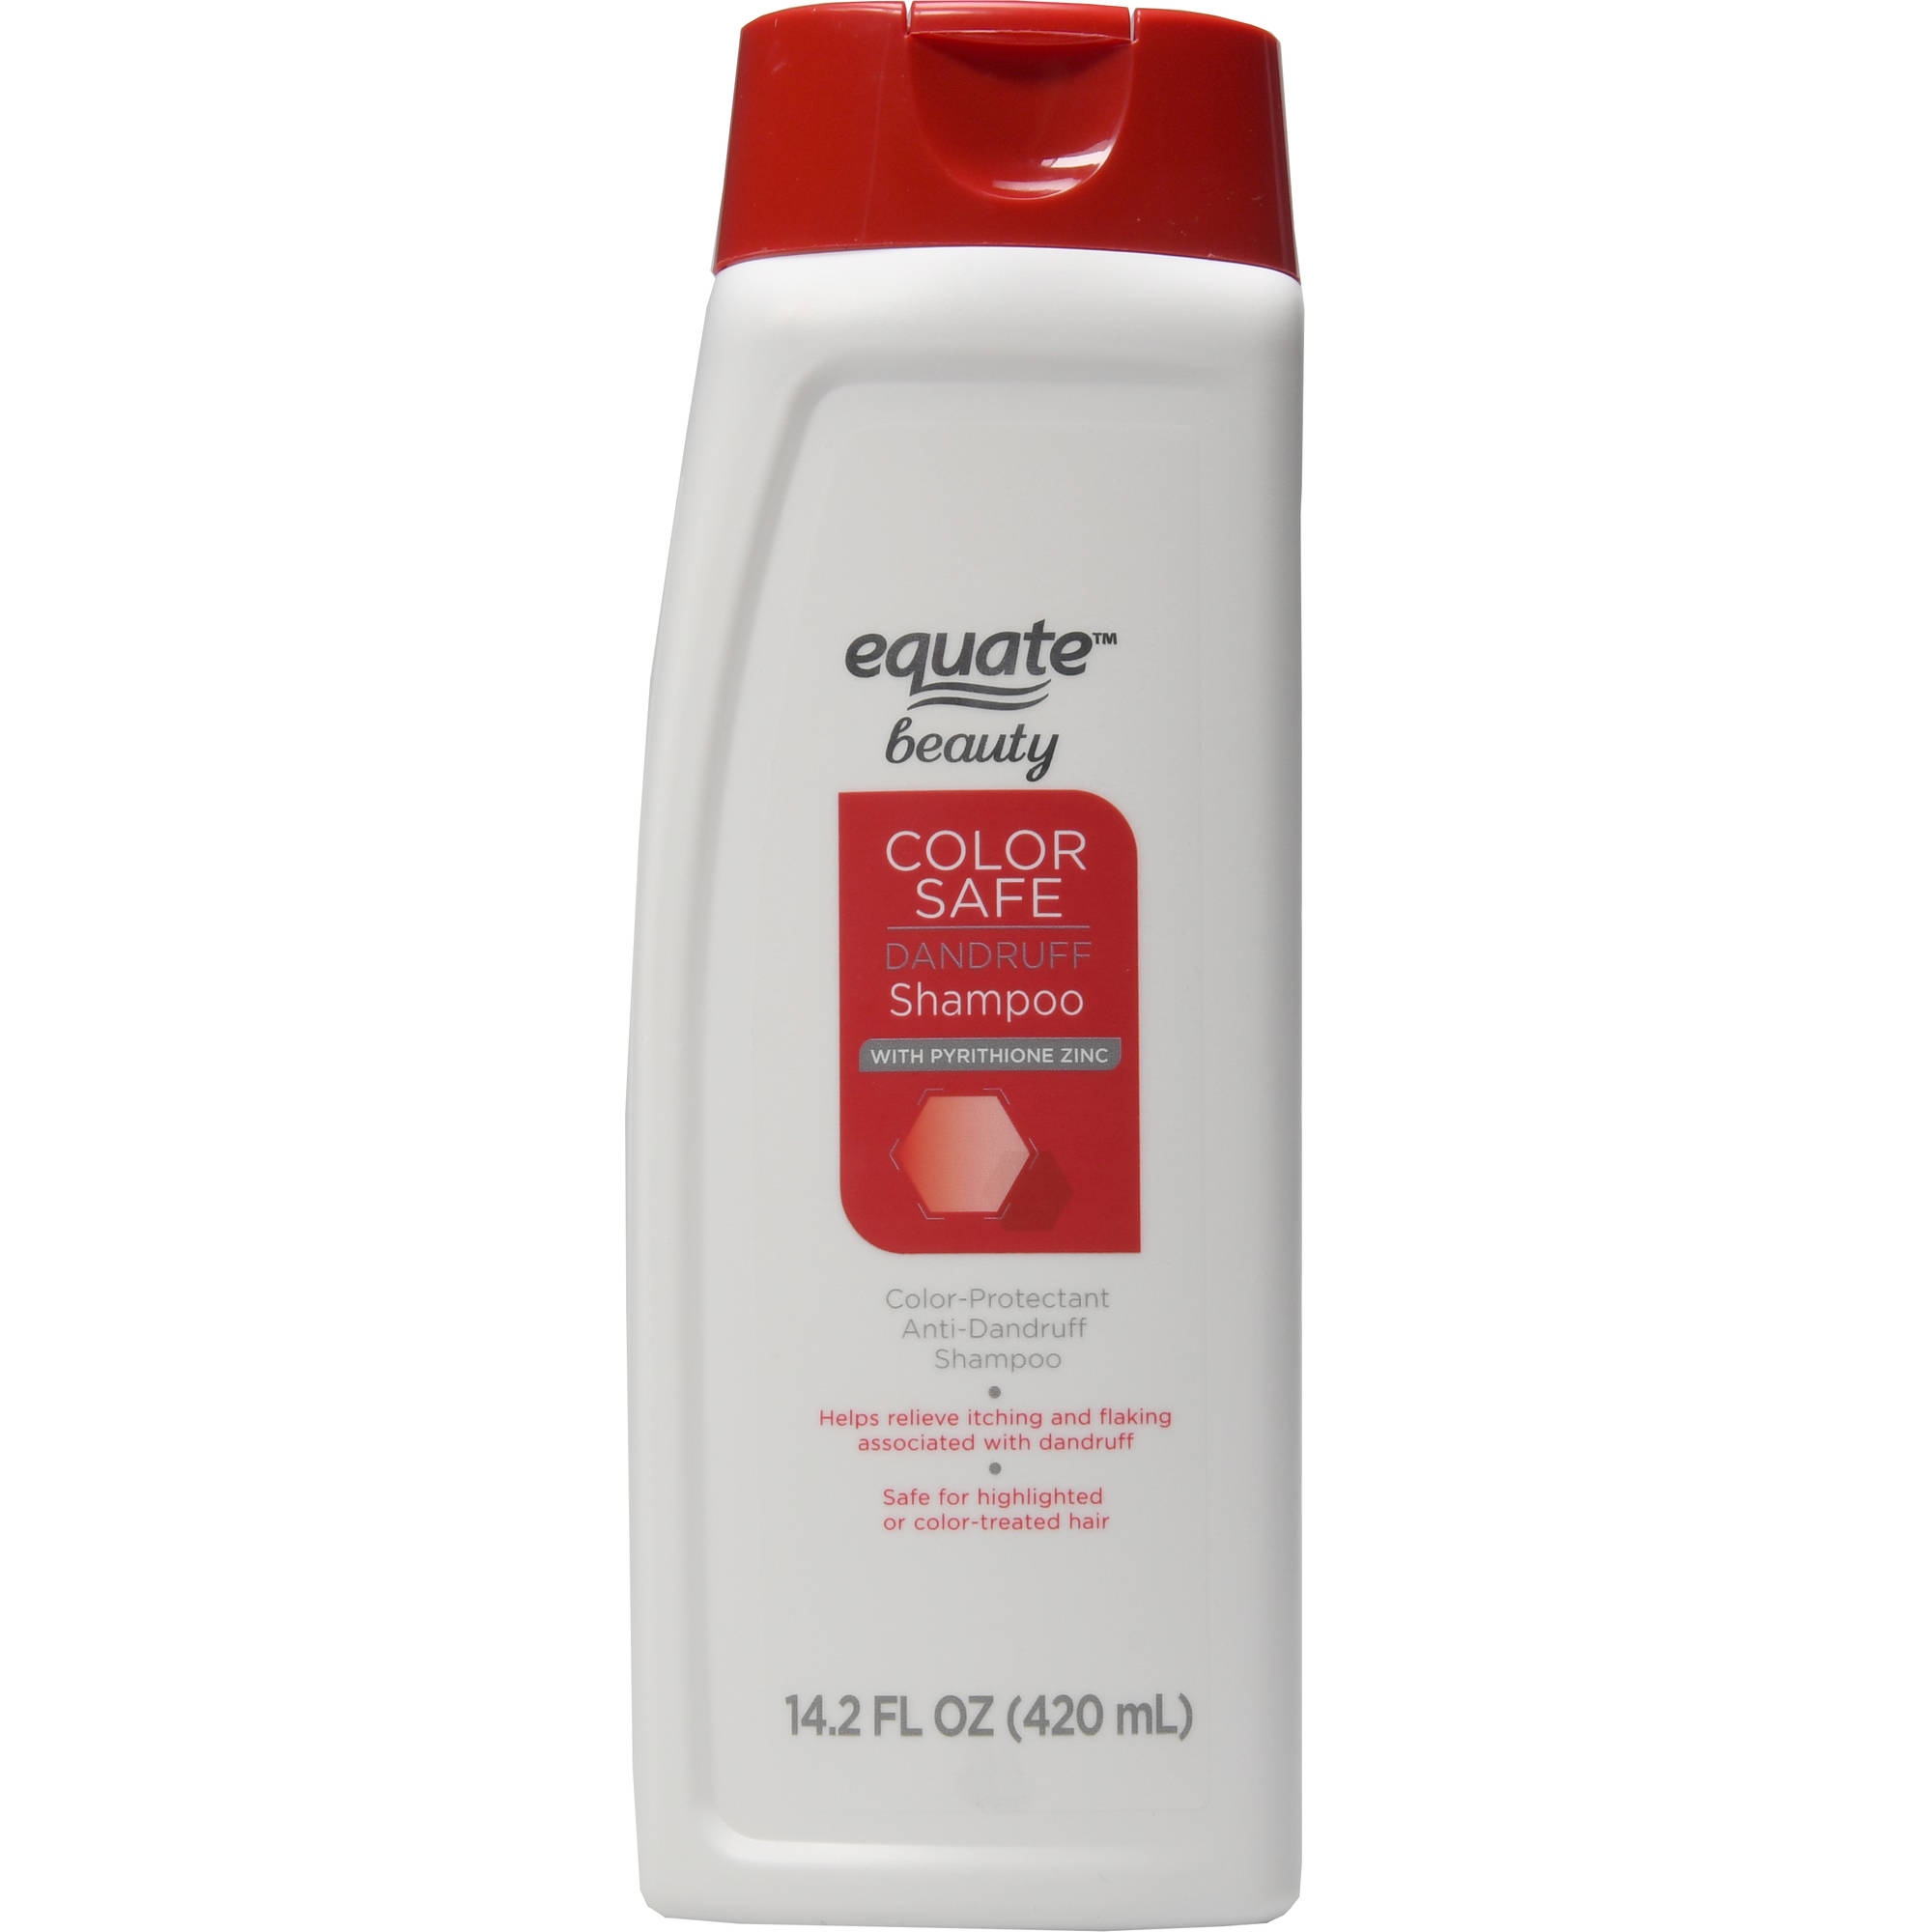 Equate Beauty Color Safe Dandruff Shampoo With Pyrithione Zinc 142